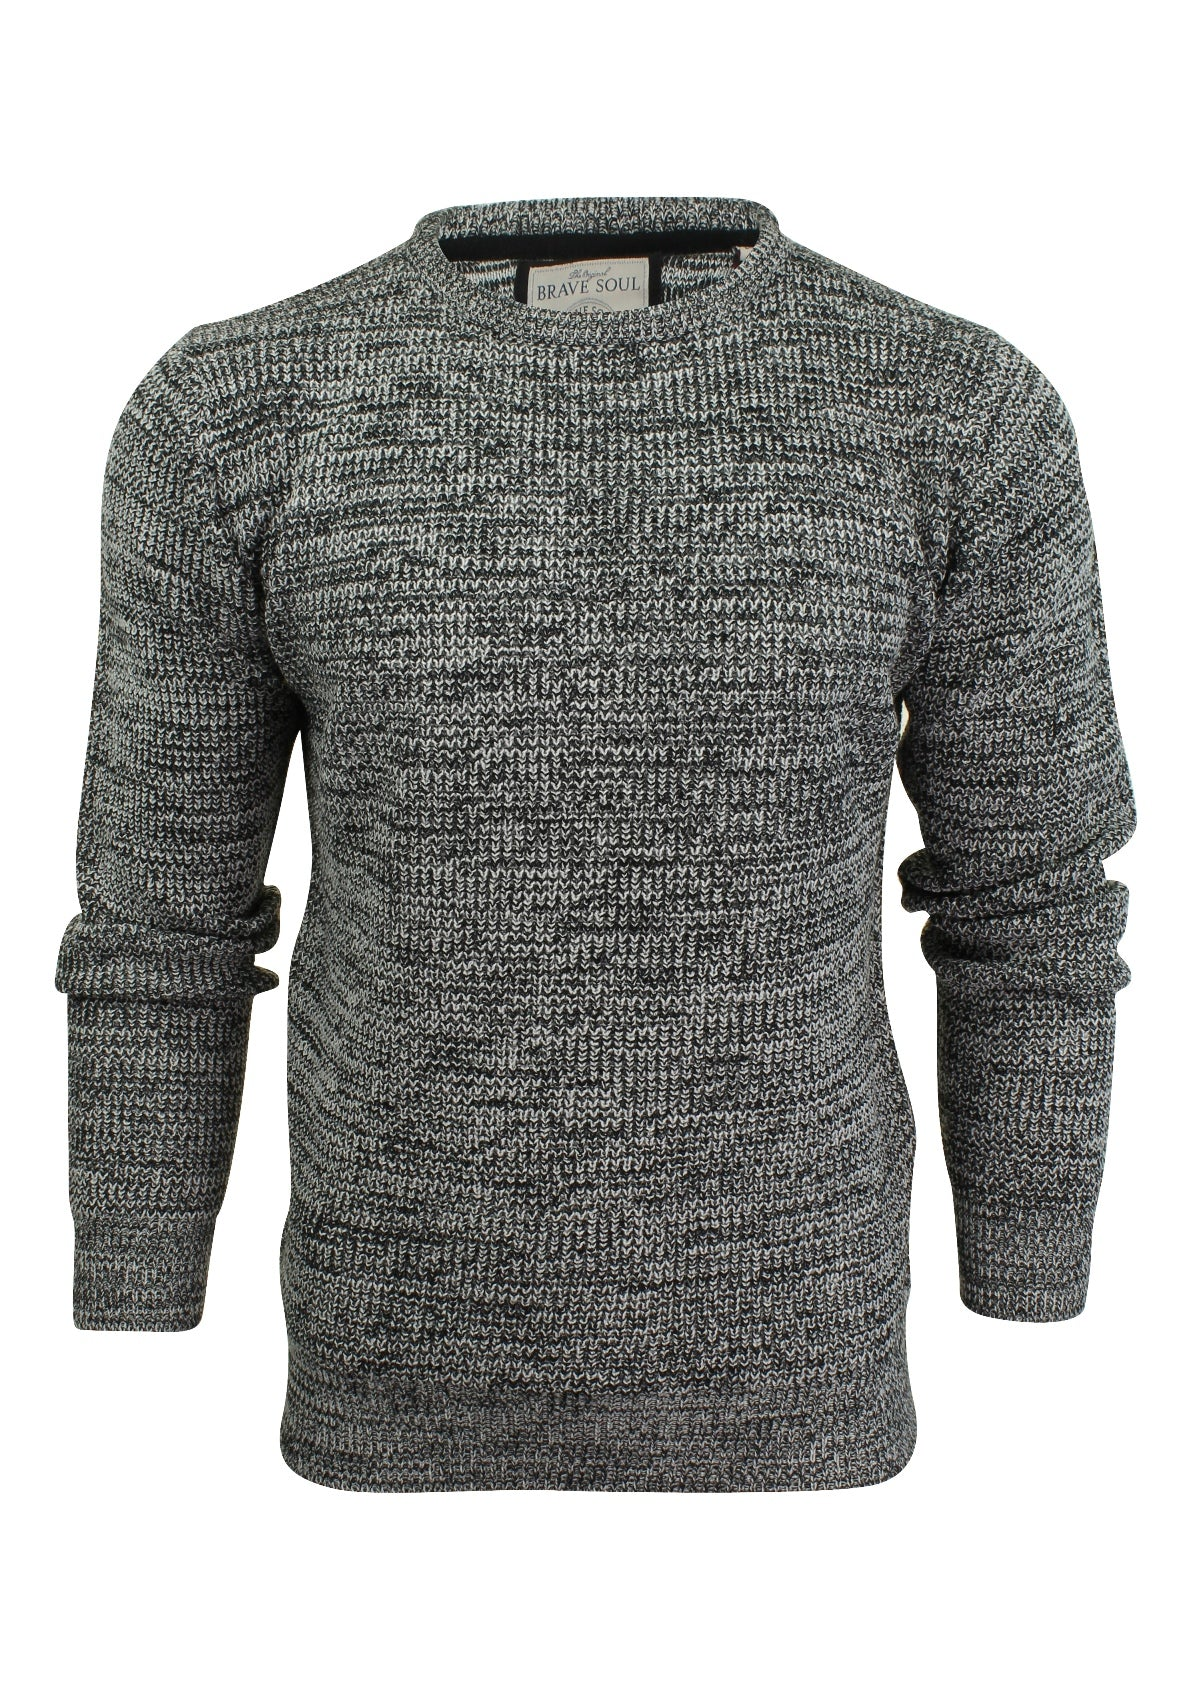 Mens Crew Neck Jumper by Brave Soul Long Sleeved-Main Image